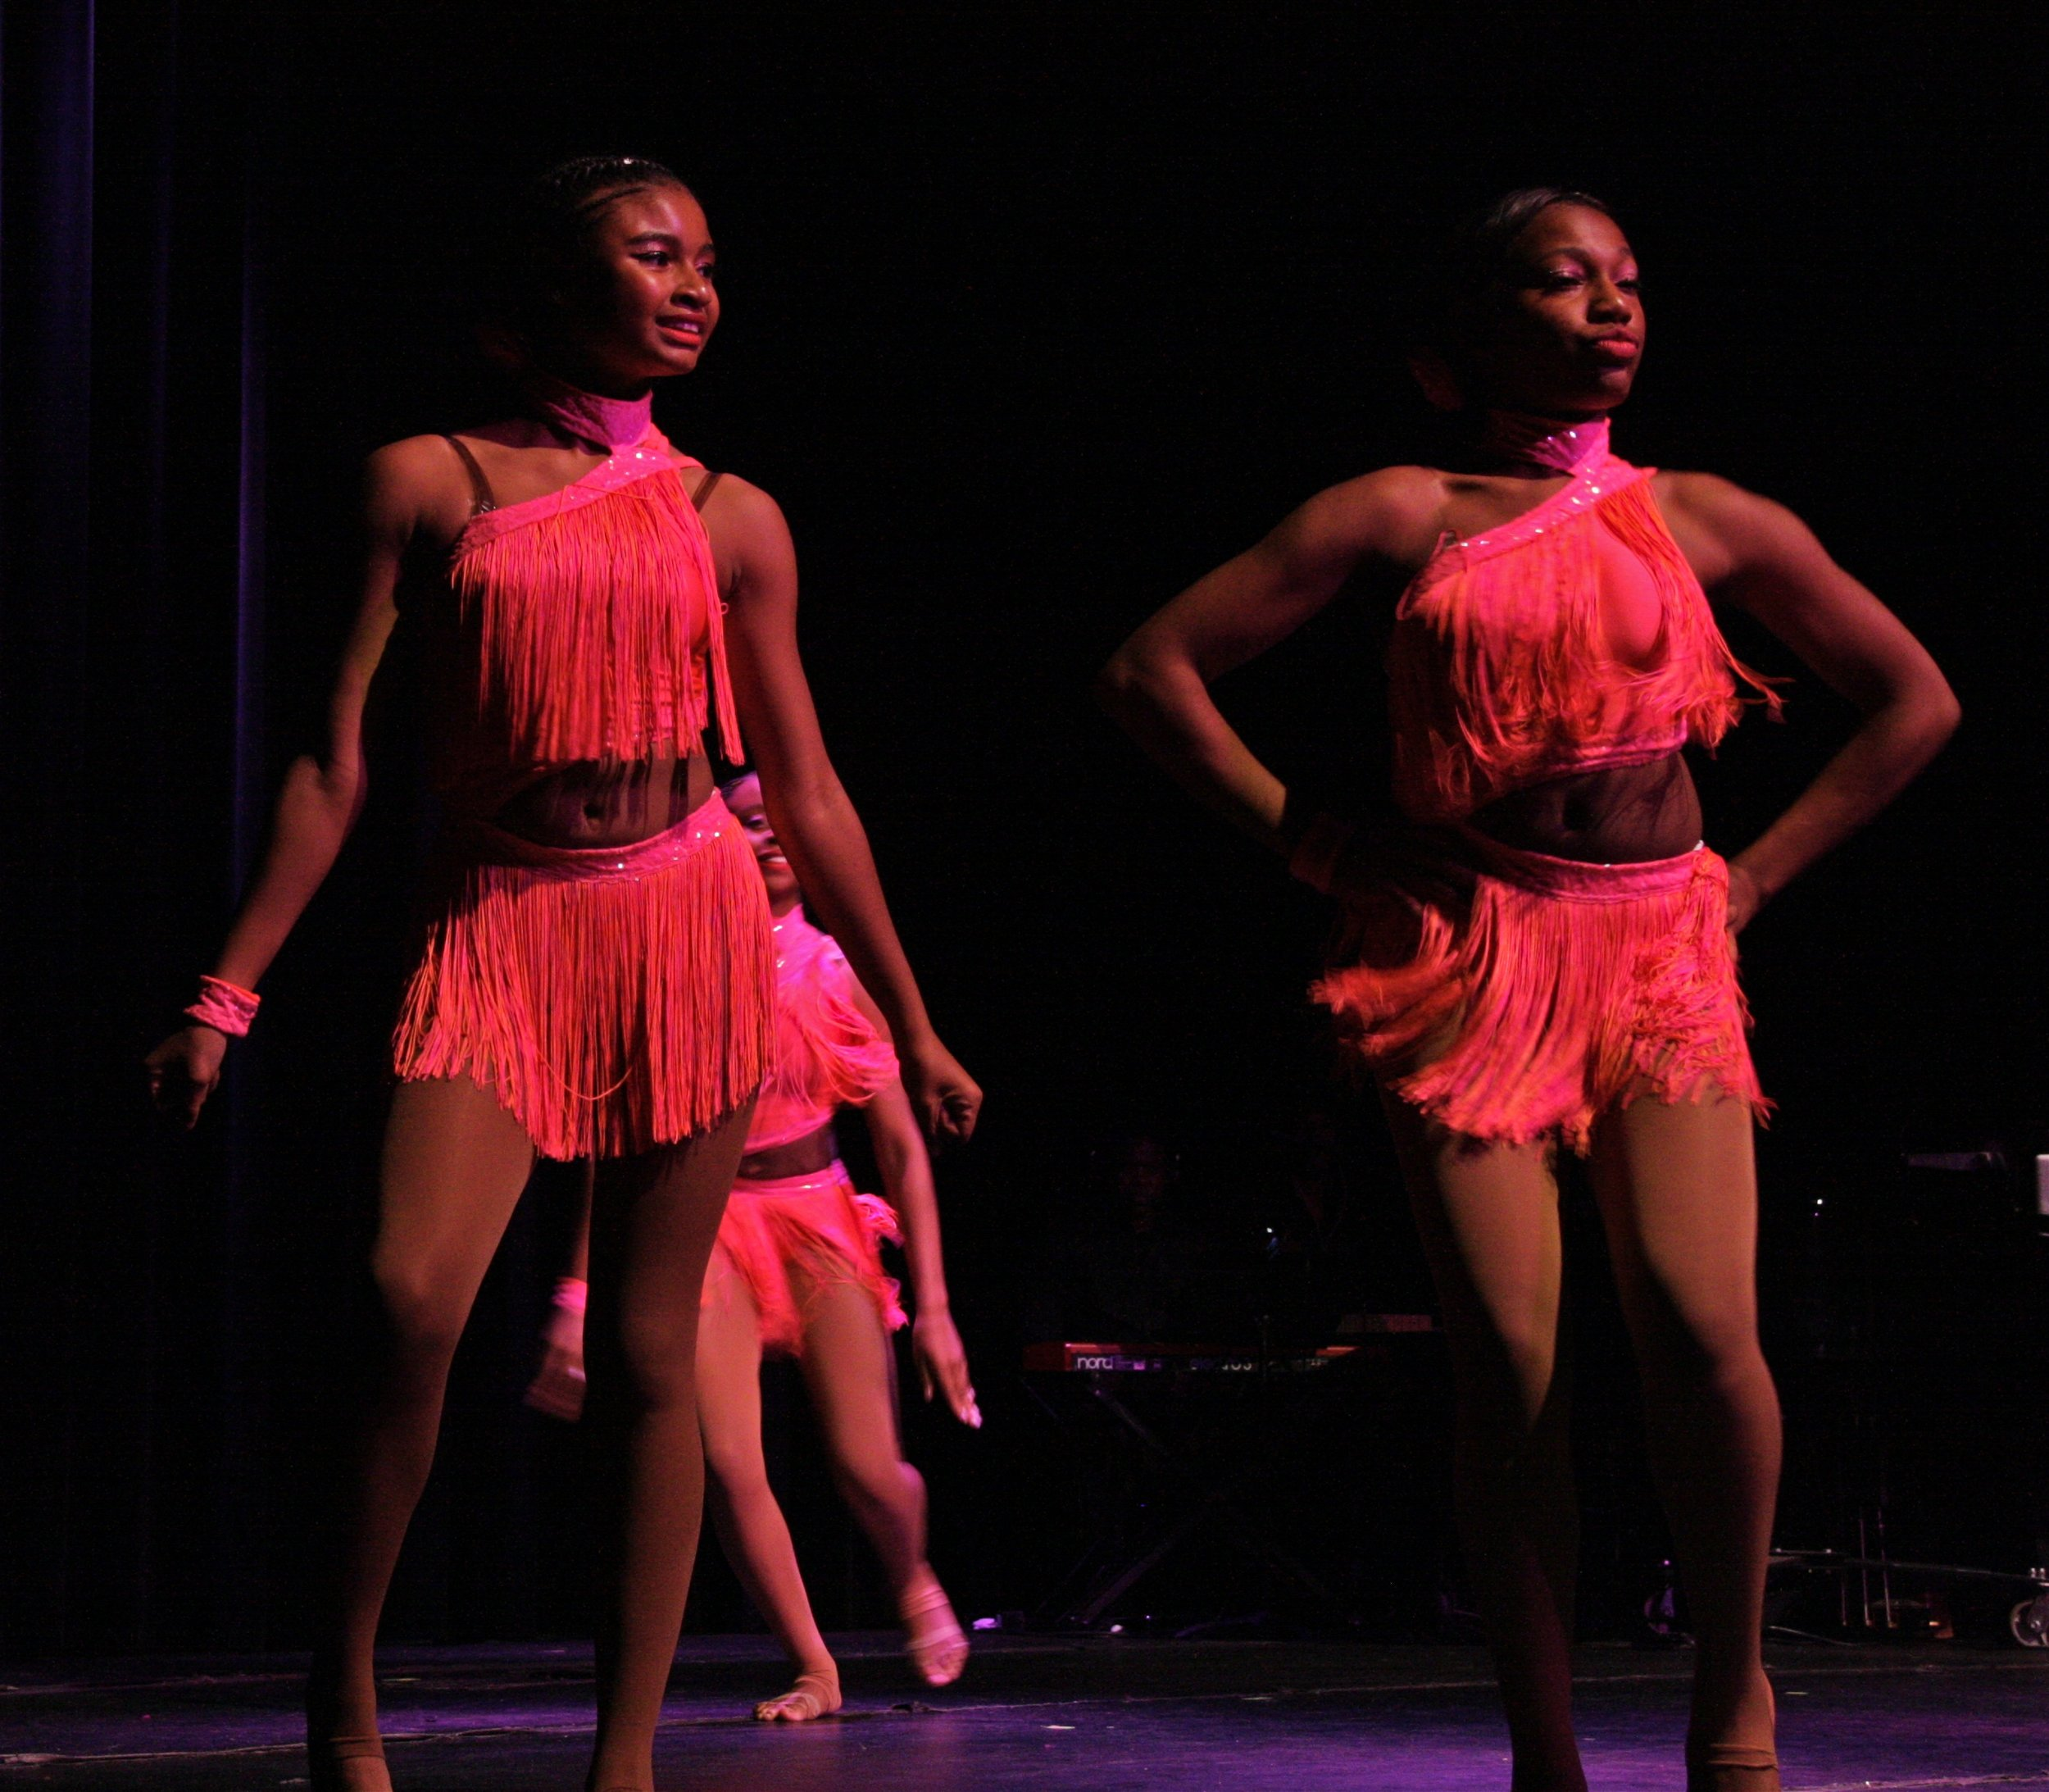 franklin tribute dancers4.jpg